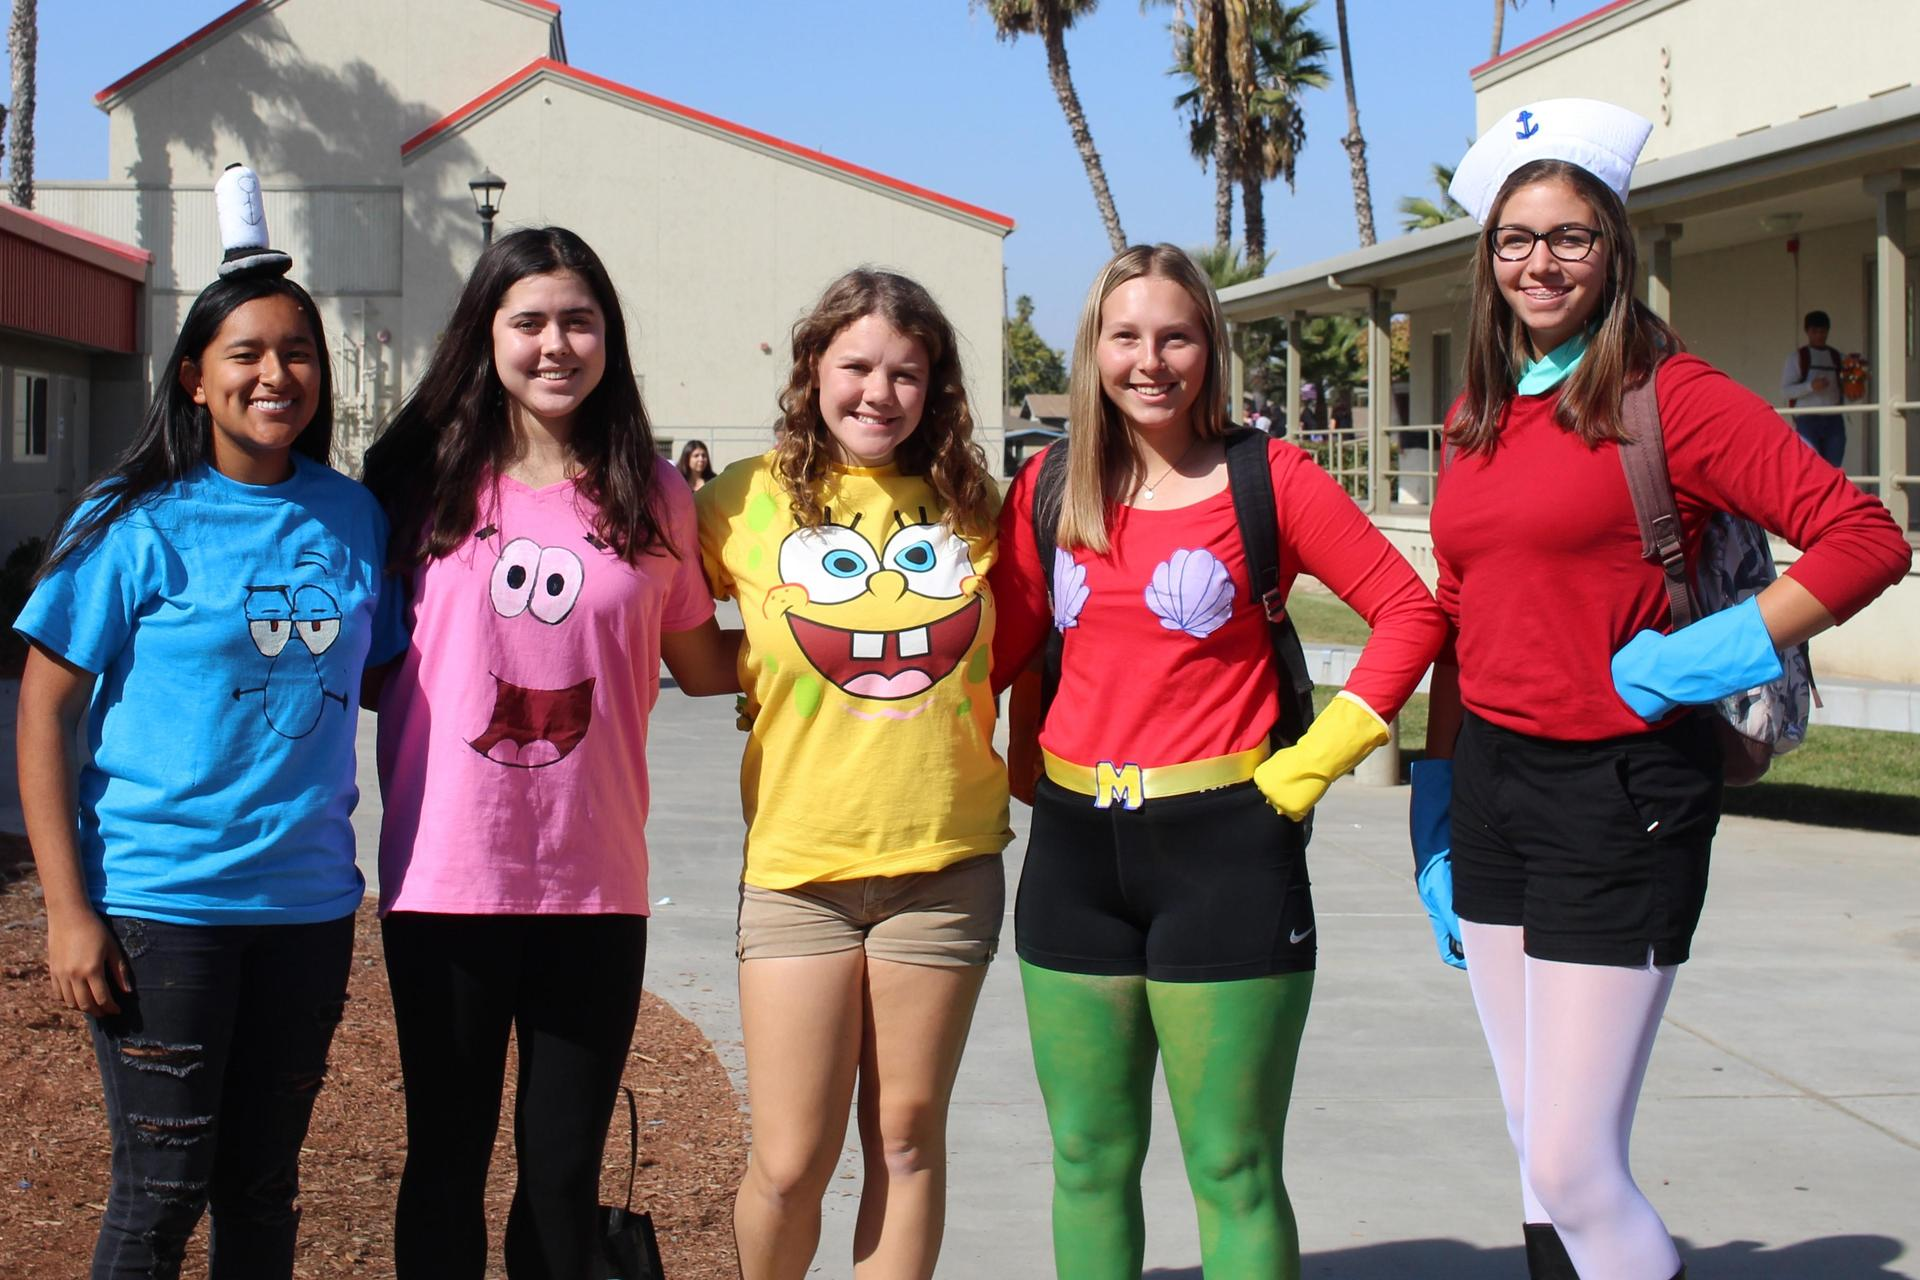 Paulina Granados as Squidward, Sydni Ringeisen as Patrick, Sydney Reardon as Spongebob, Sierra Calvert as Mermaid Man, Kealey Sabin as Barnacle Boy